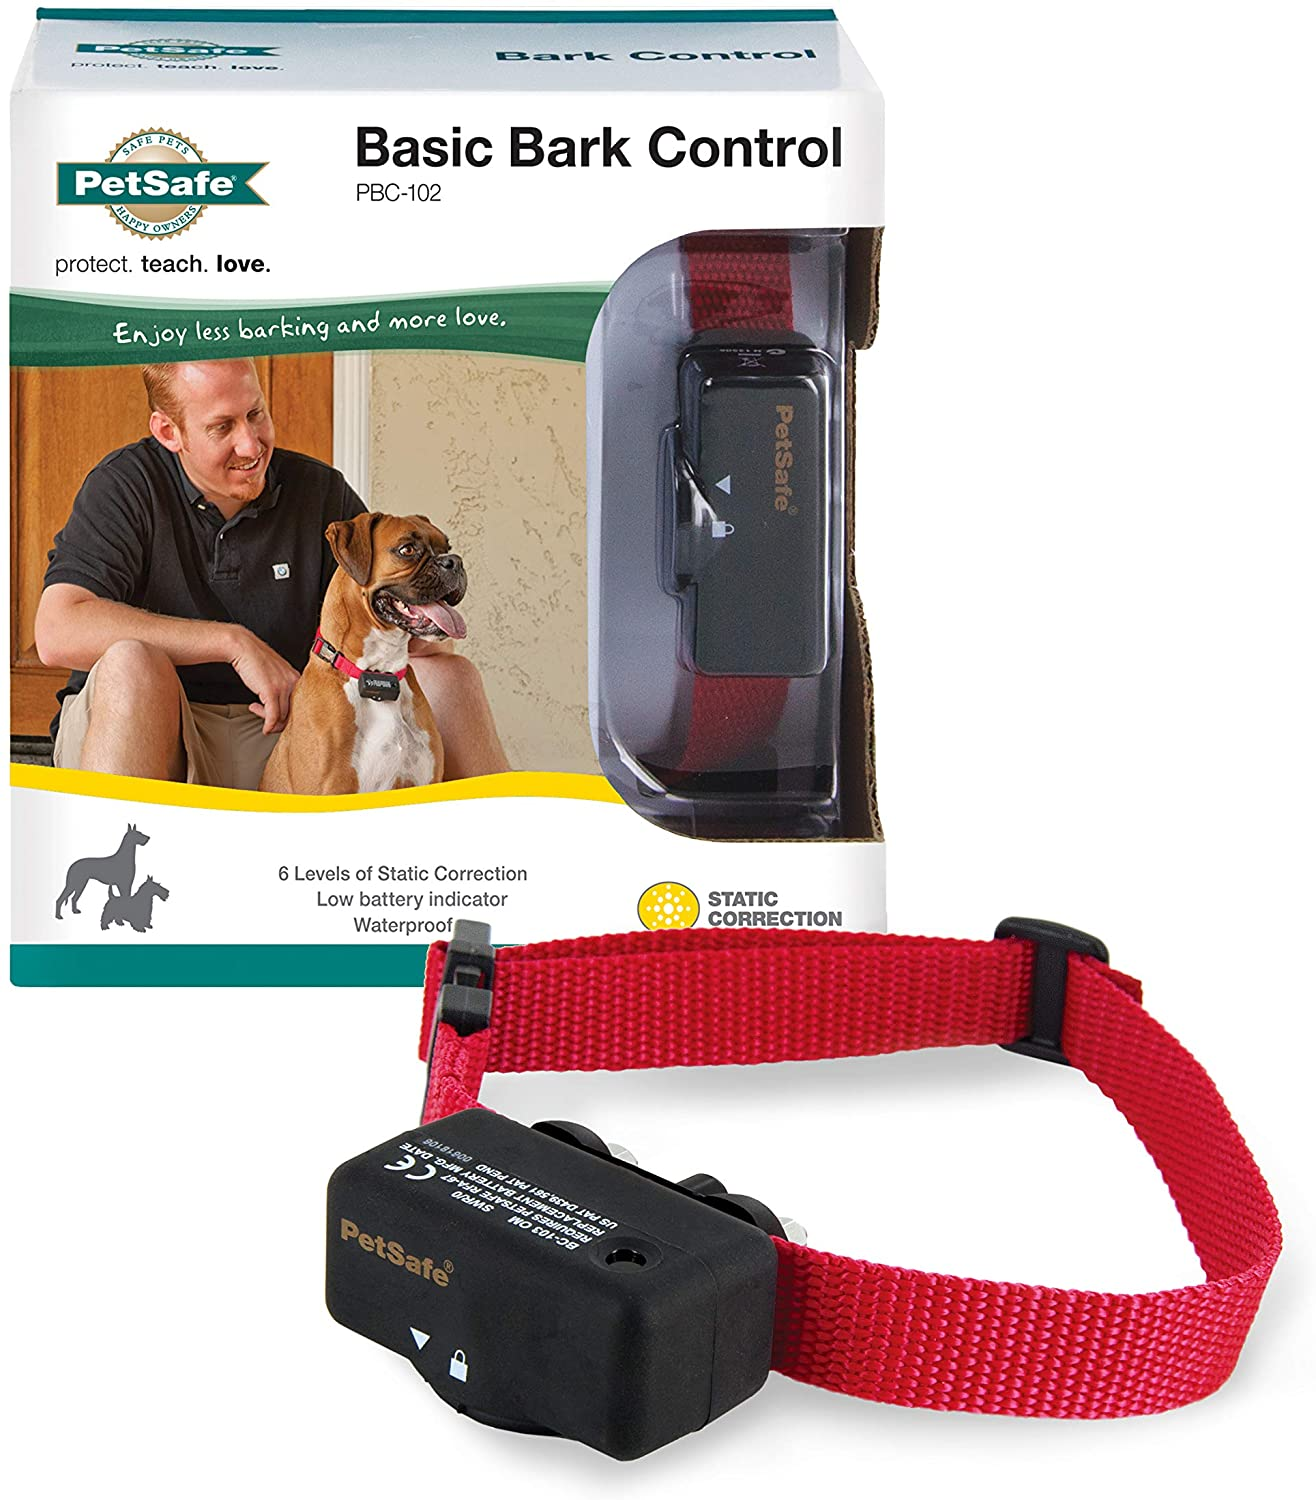 PetSafe Basic Bark Control Collar for Dogs 8 lb. and Up, Anti-Bark Training Device, Waterproof, Static Correction, Canine : Barking Deterrent Collars : Pet Supplies